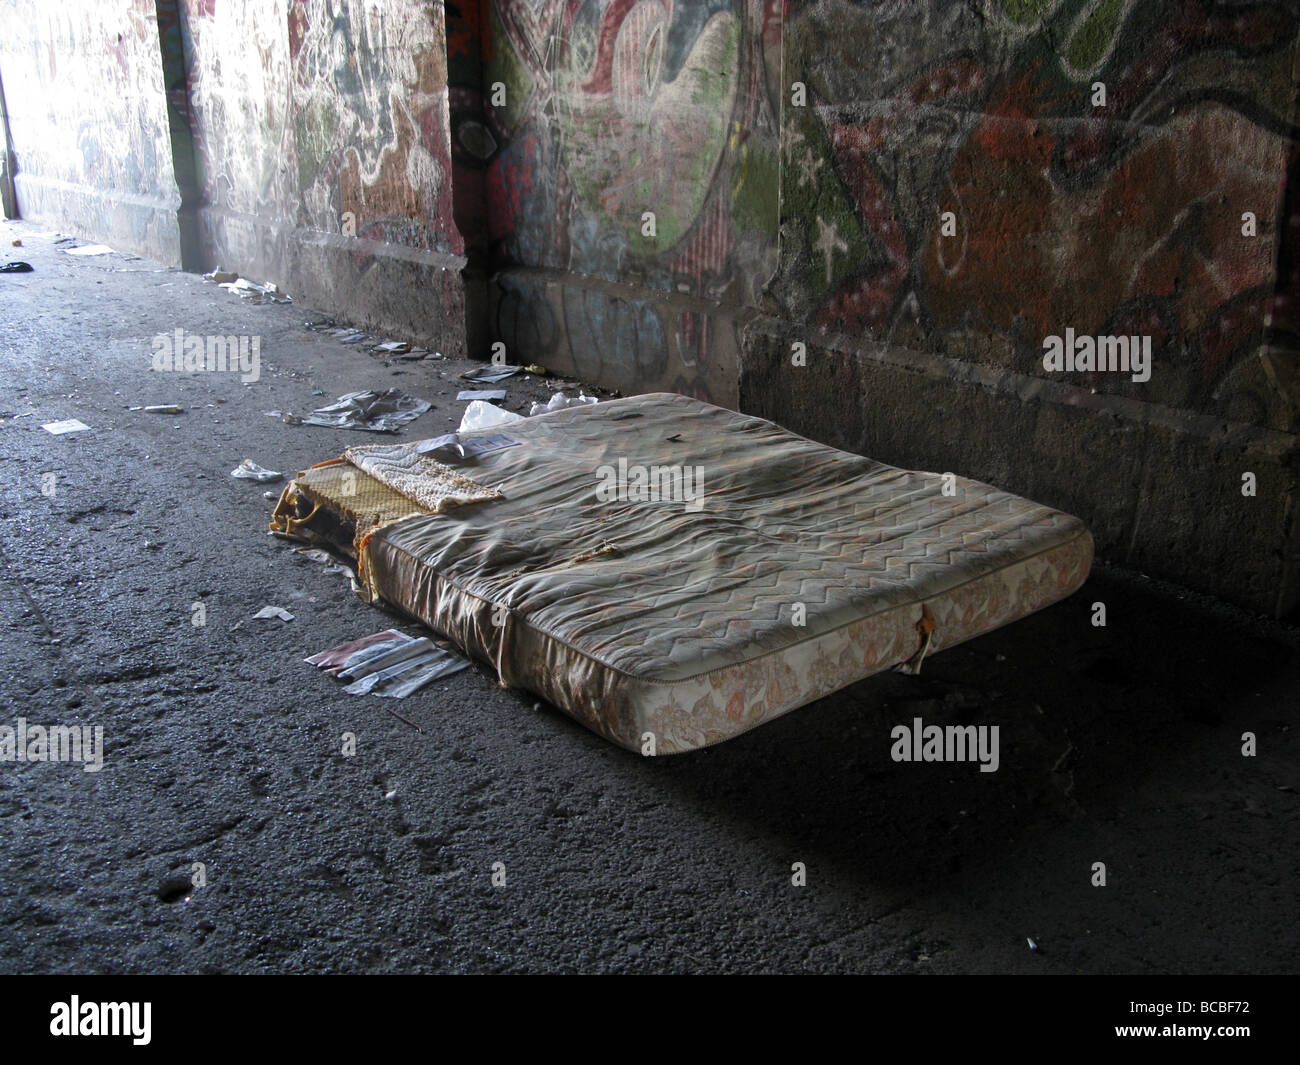 Pleasant Bed Of Homeless Man Person Under Bridge Stock Photo Complete Home Design Collection Barbaintelli Responsecom